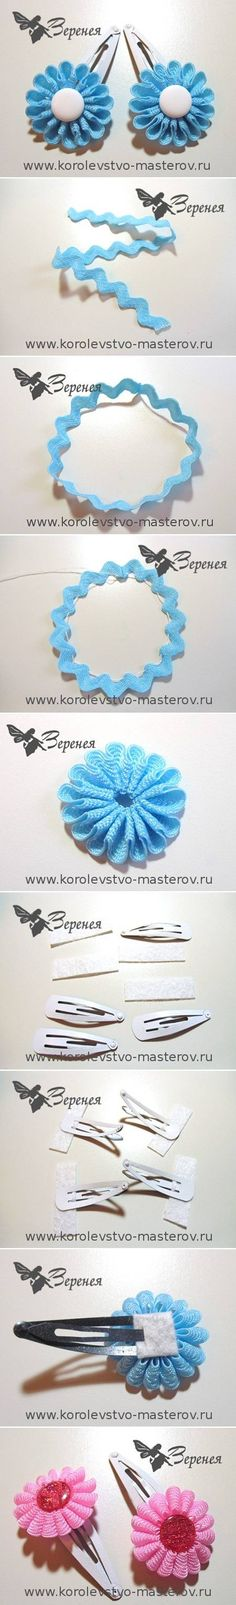 DIY Braid Flower DIY Braid Flower